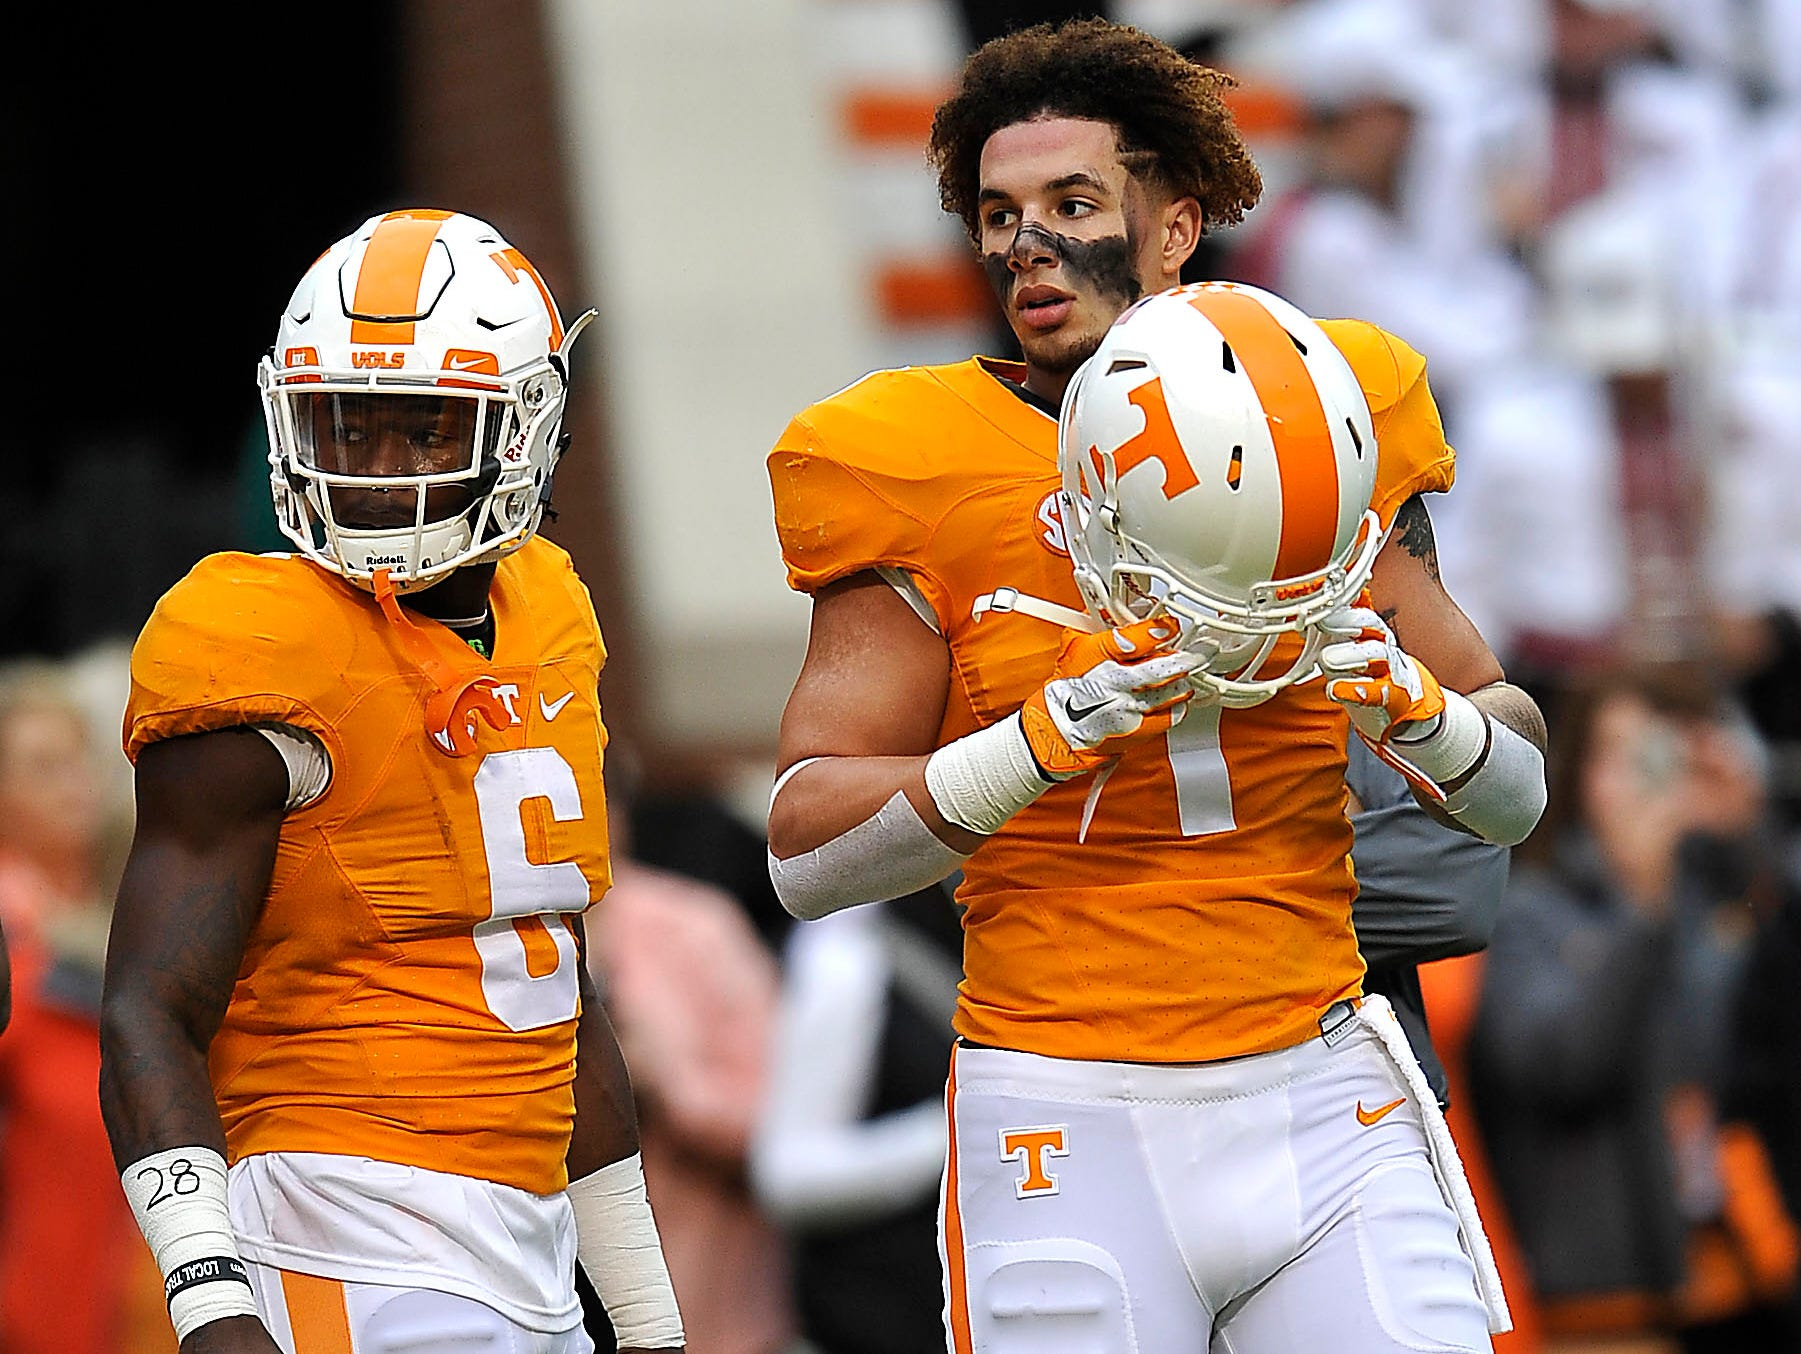 Tennessee running back Jalen Hurd (1) puts on his helmet as he prepares to warm up before the University of Tennessee plays South Carolina at Neyland Stadium on Nov. 7.